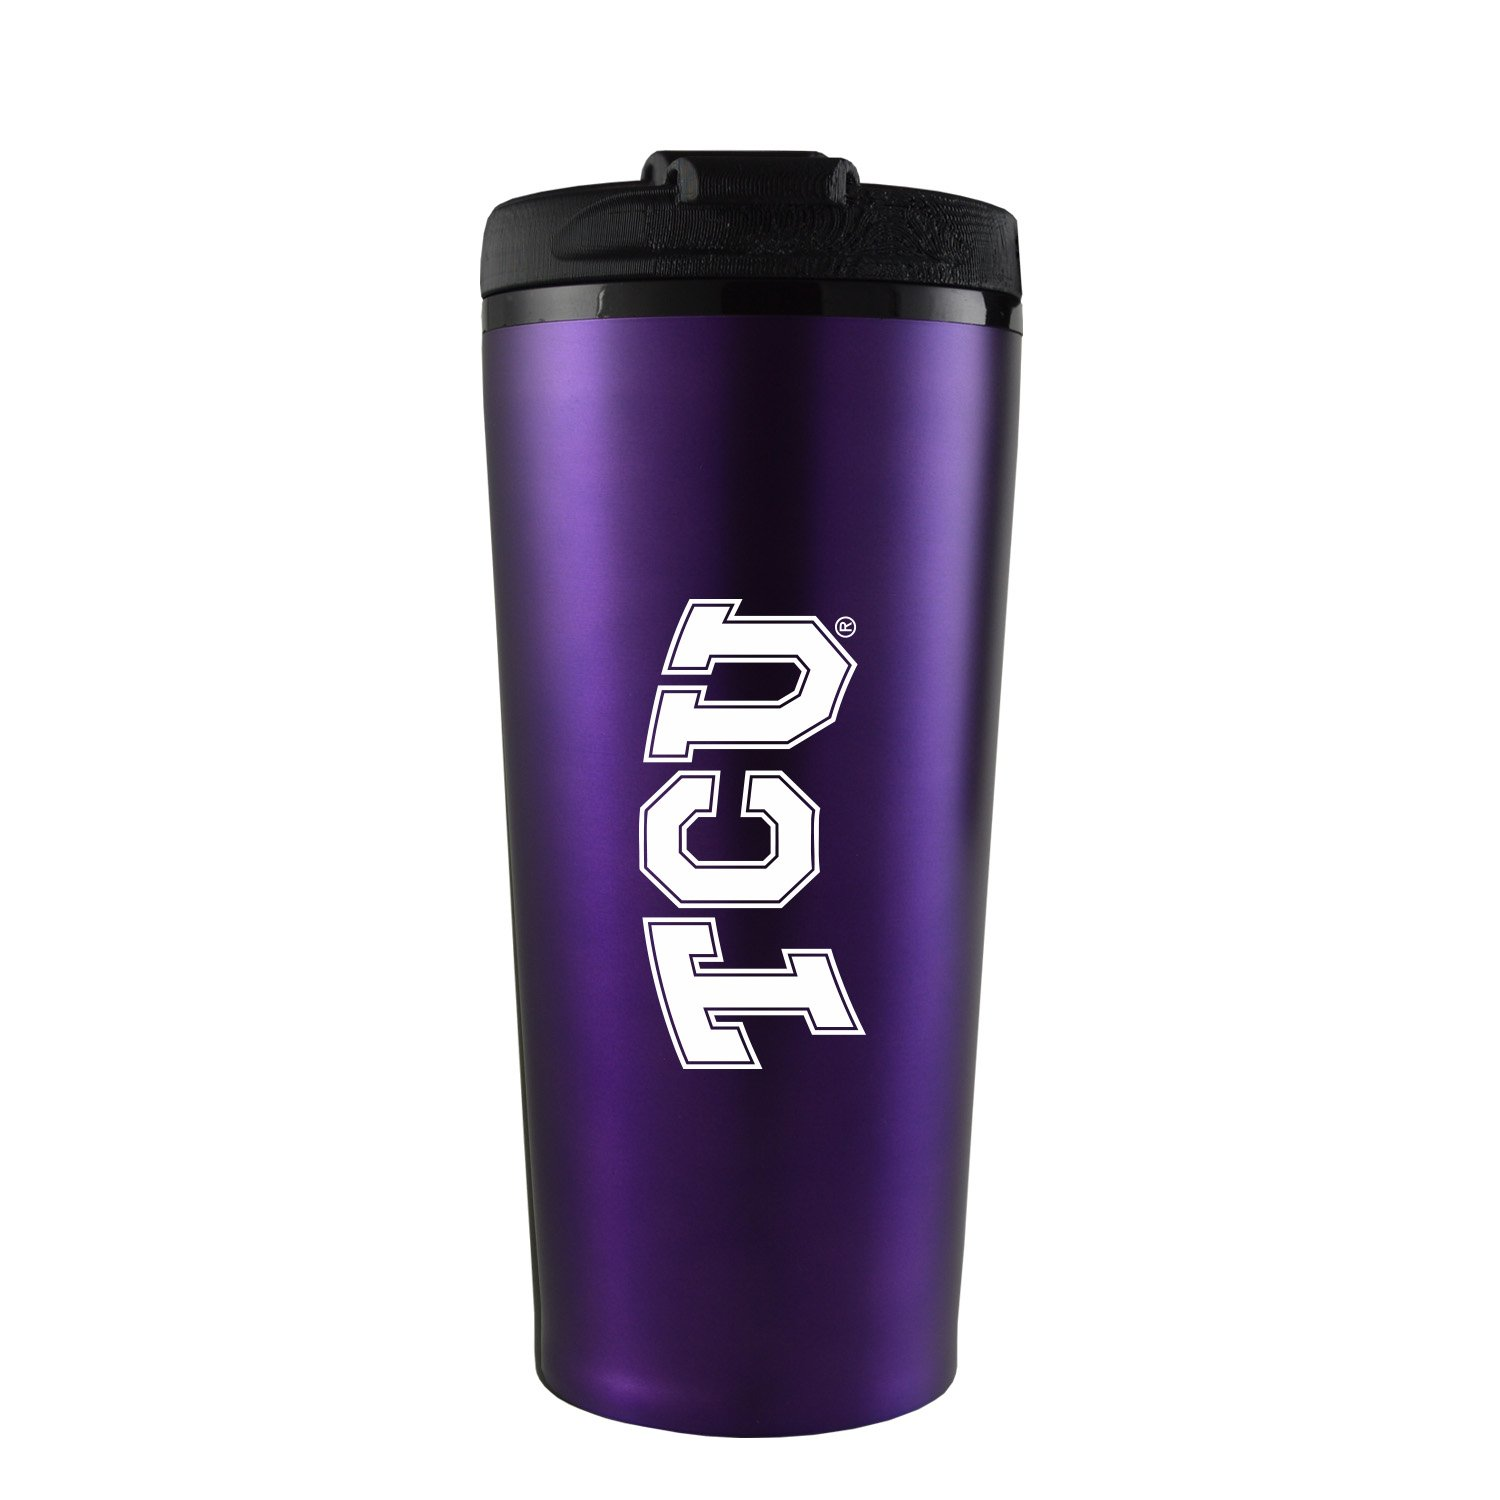 Texas Christian University -16 oz. Travel Mug Tumbler-Purple by LXG, Inc.